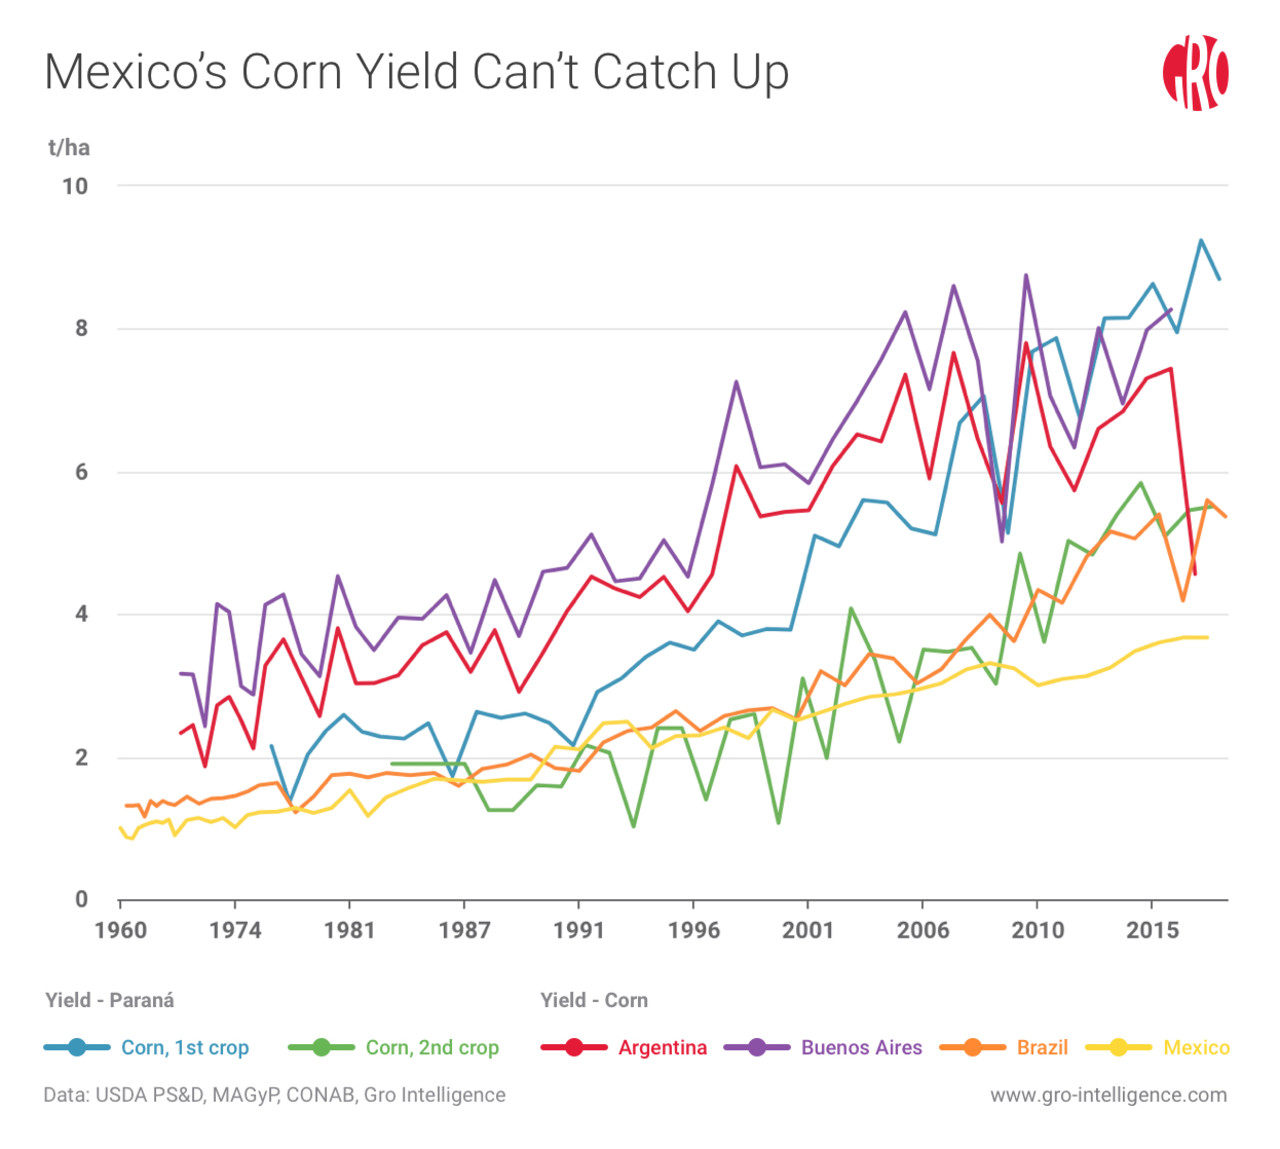 Mexico's Corn Yield Can't Catch Up